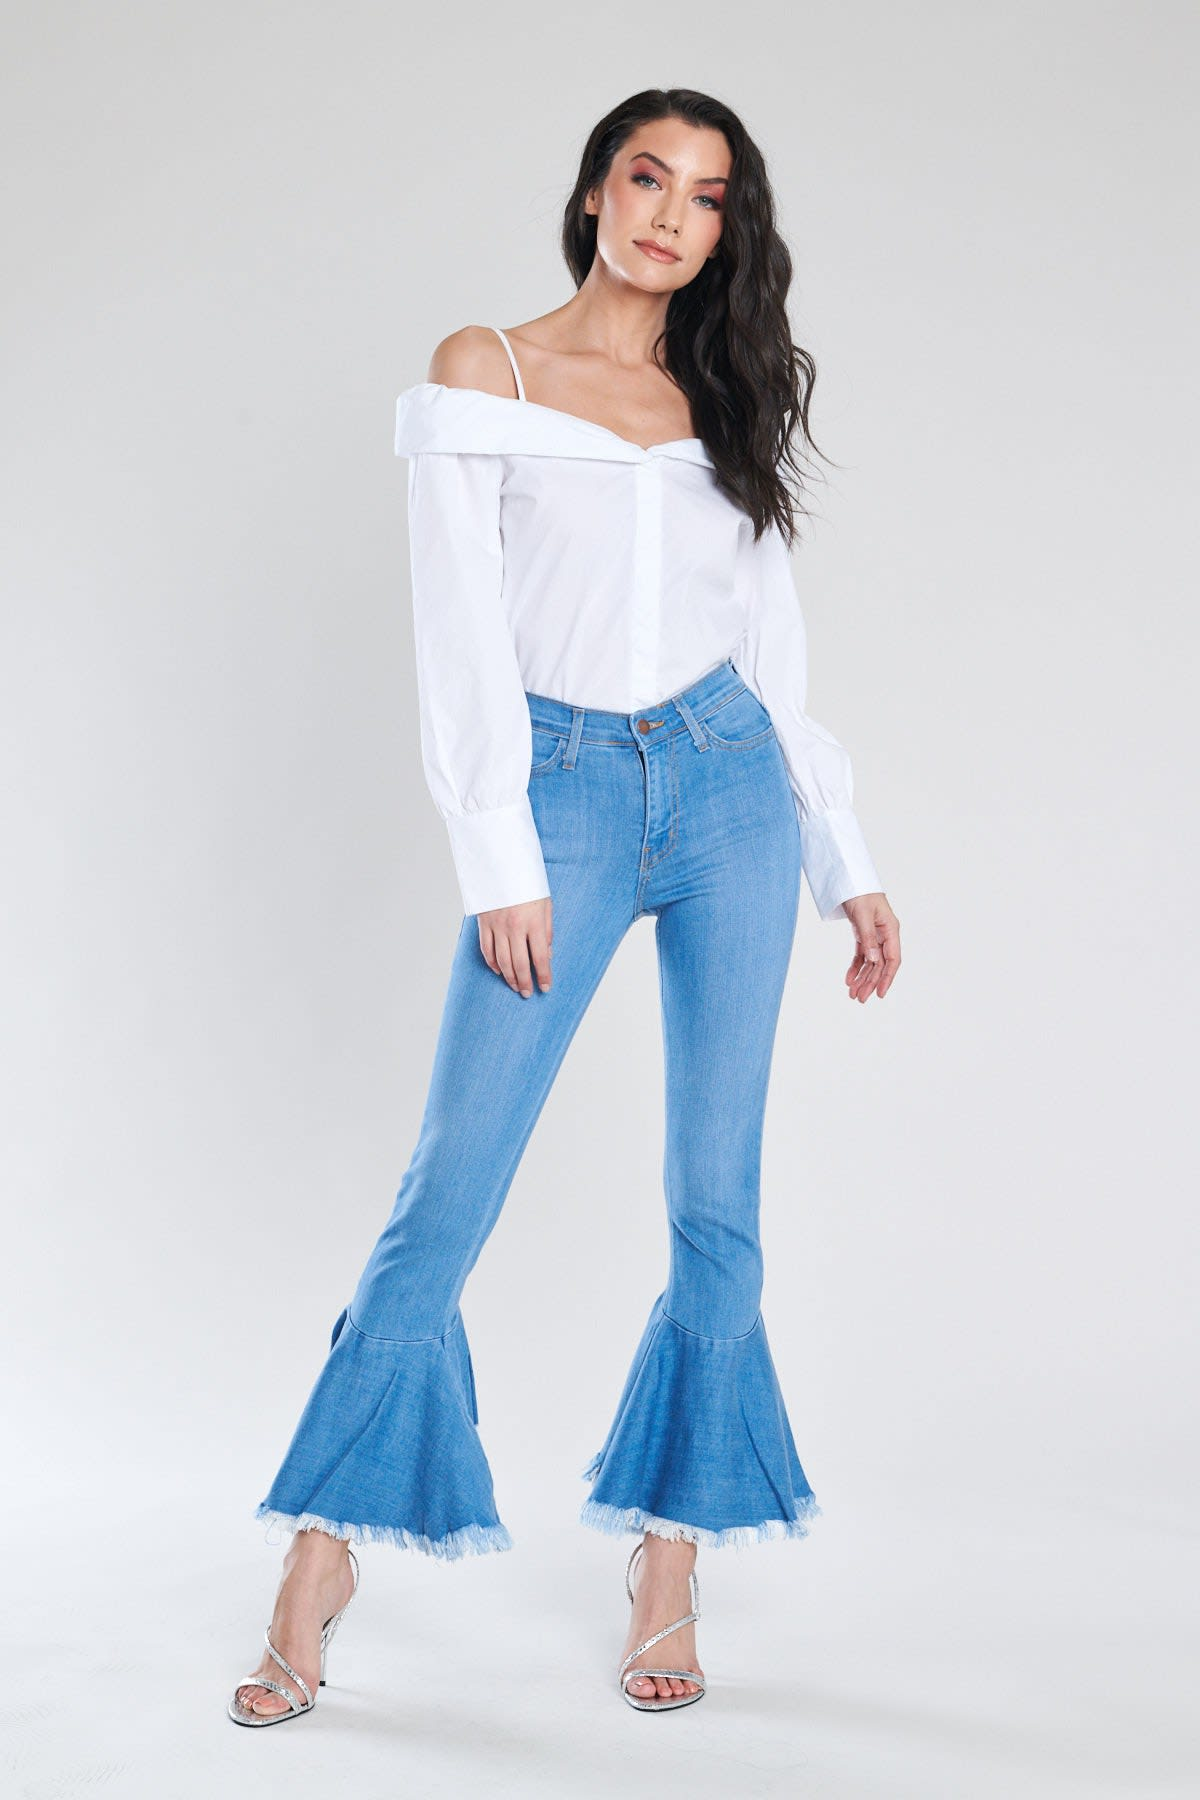 Ruffle Bell-Bottom Jeans - Light stone - Front